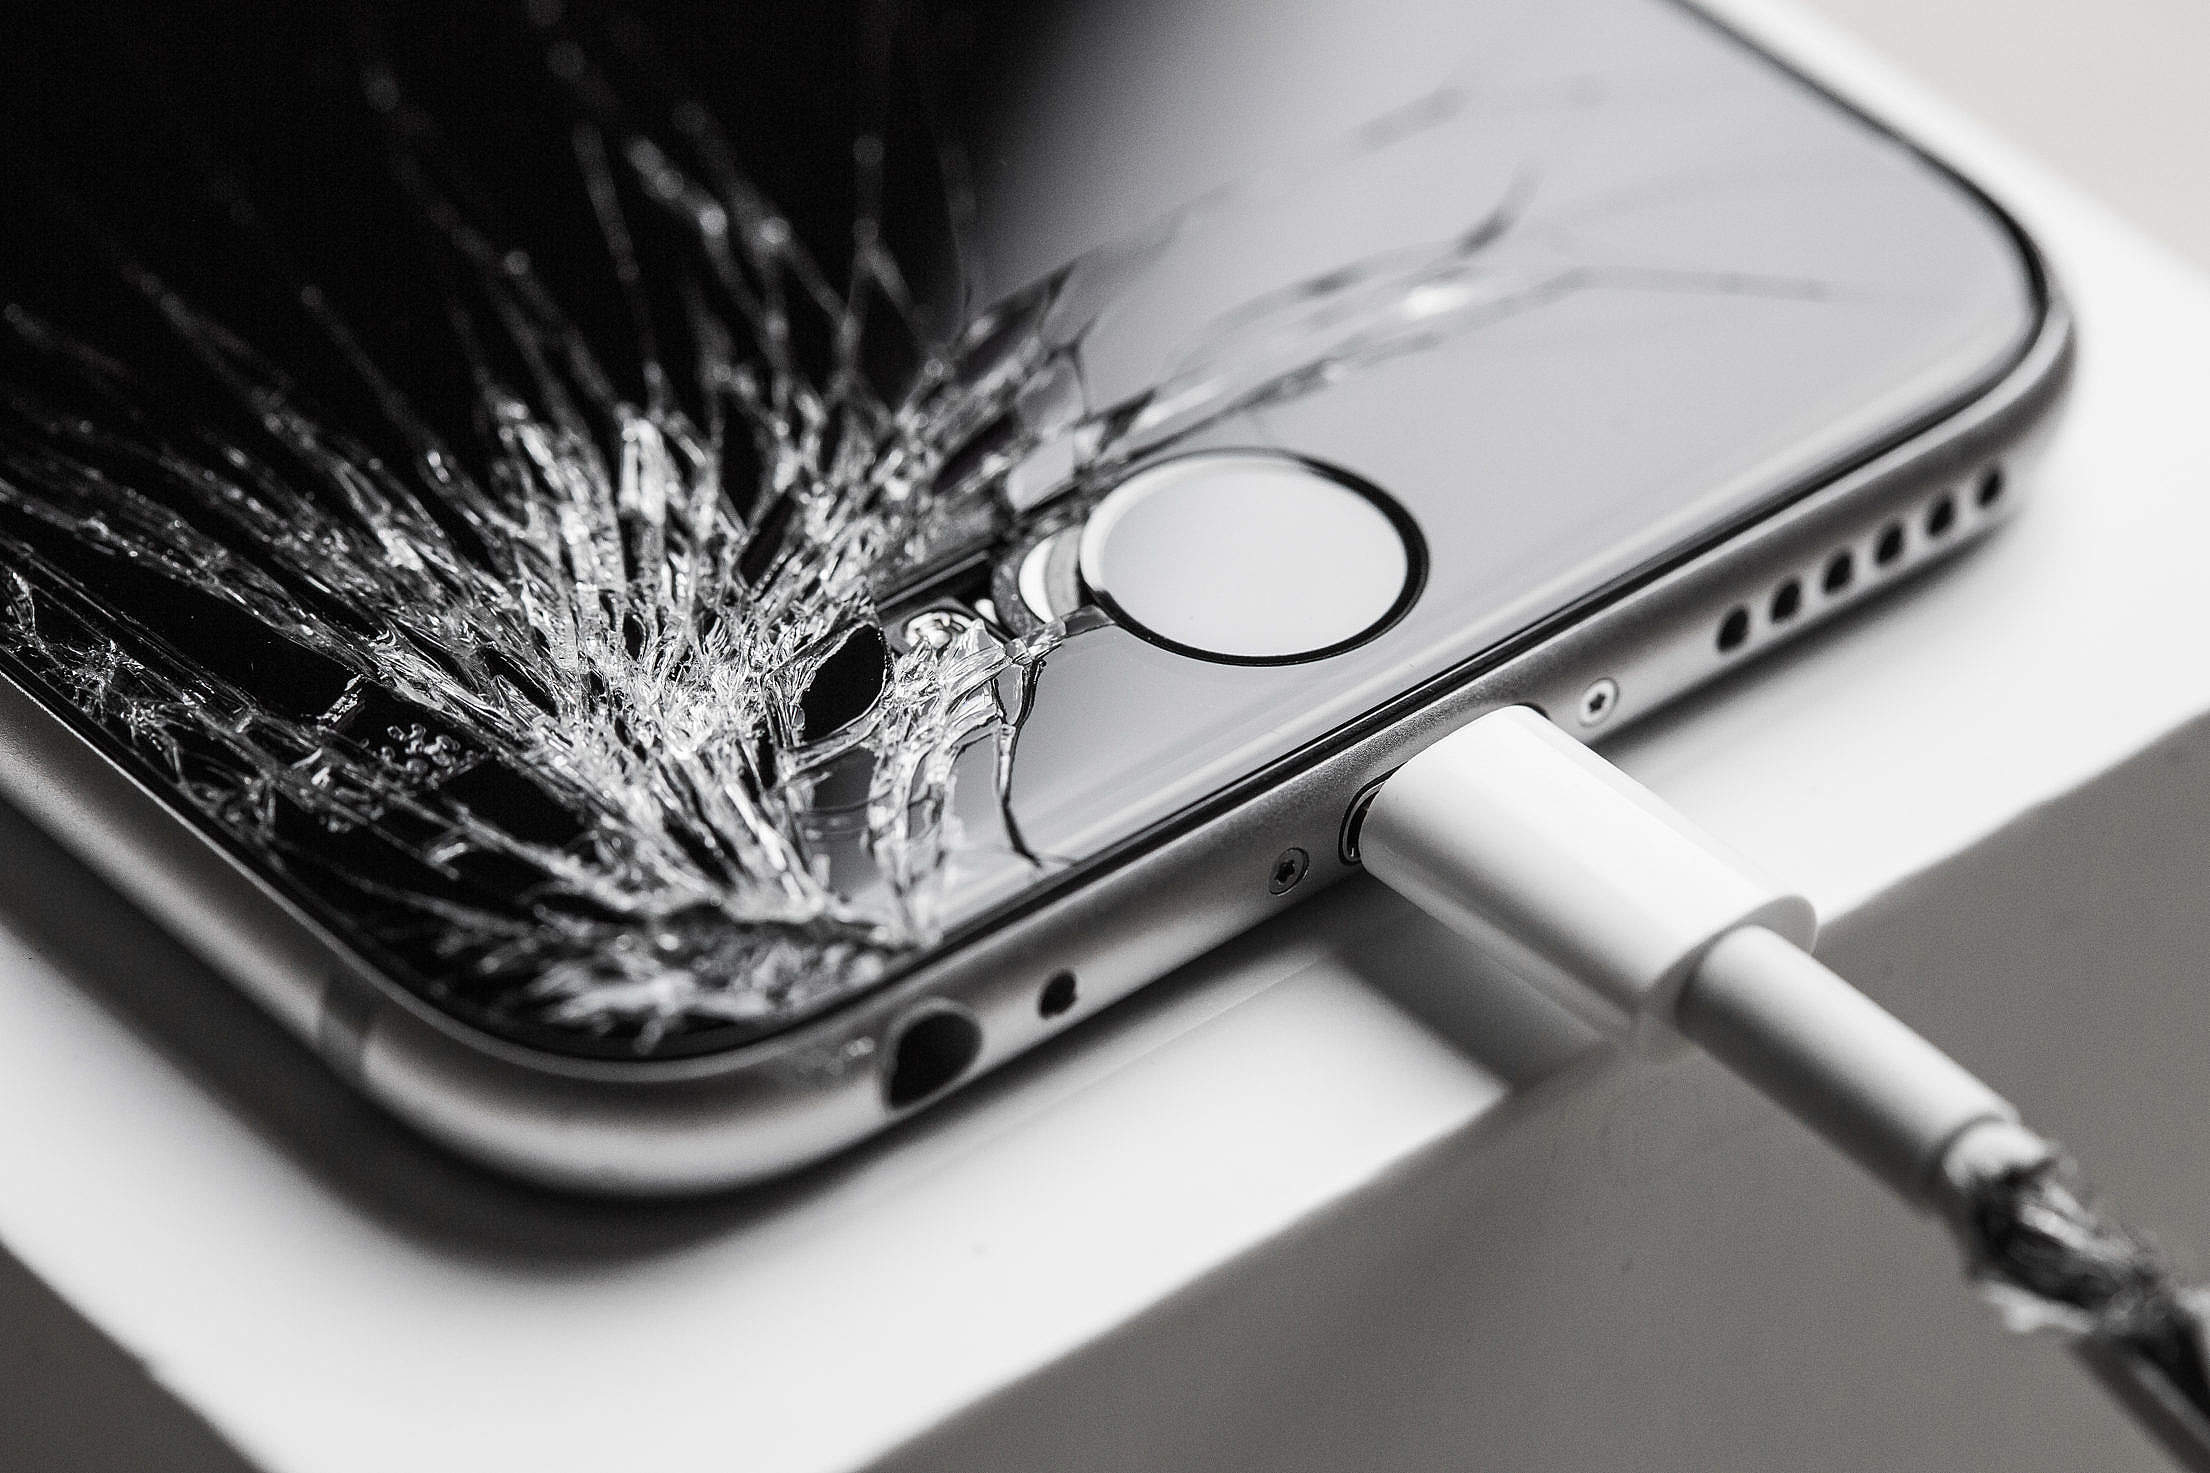 Crashed iPhone 6 with Cracked Screen Display Free Stock Photo